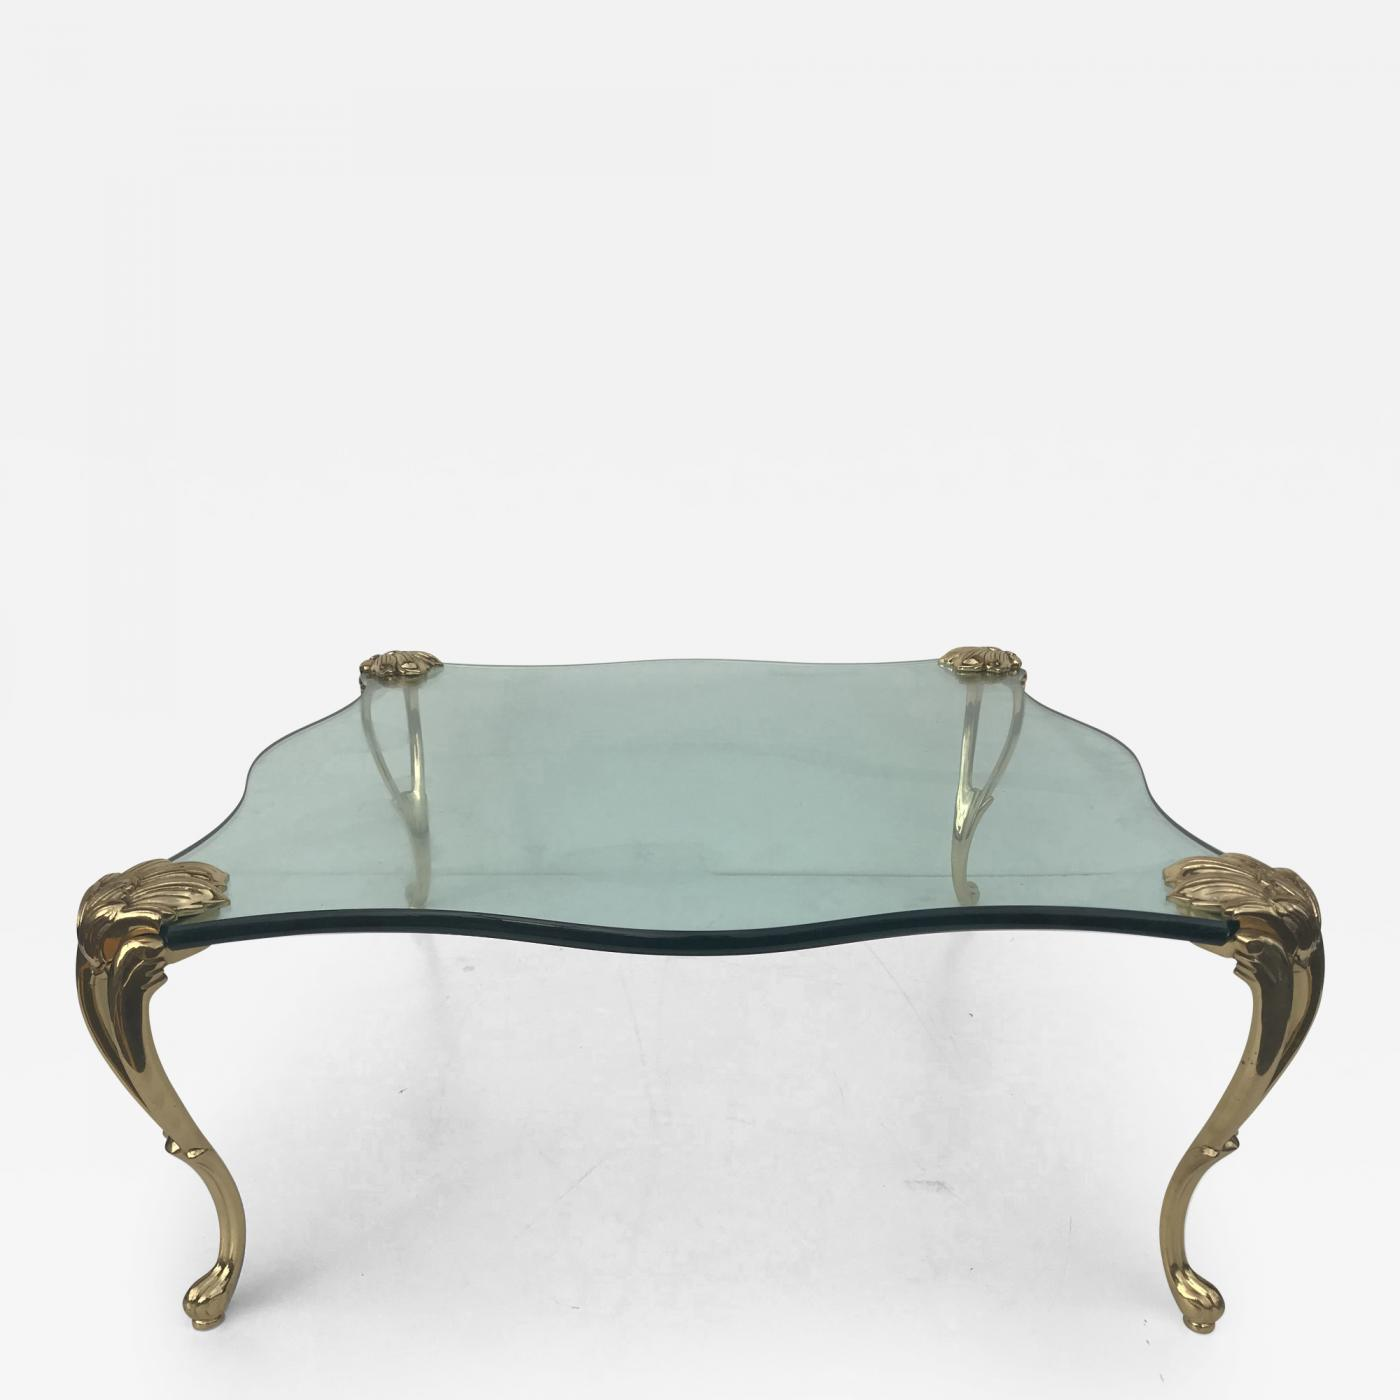 maison jansen square glass and brass coffee table manner of maison jansen